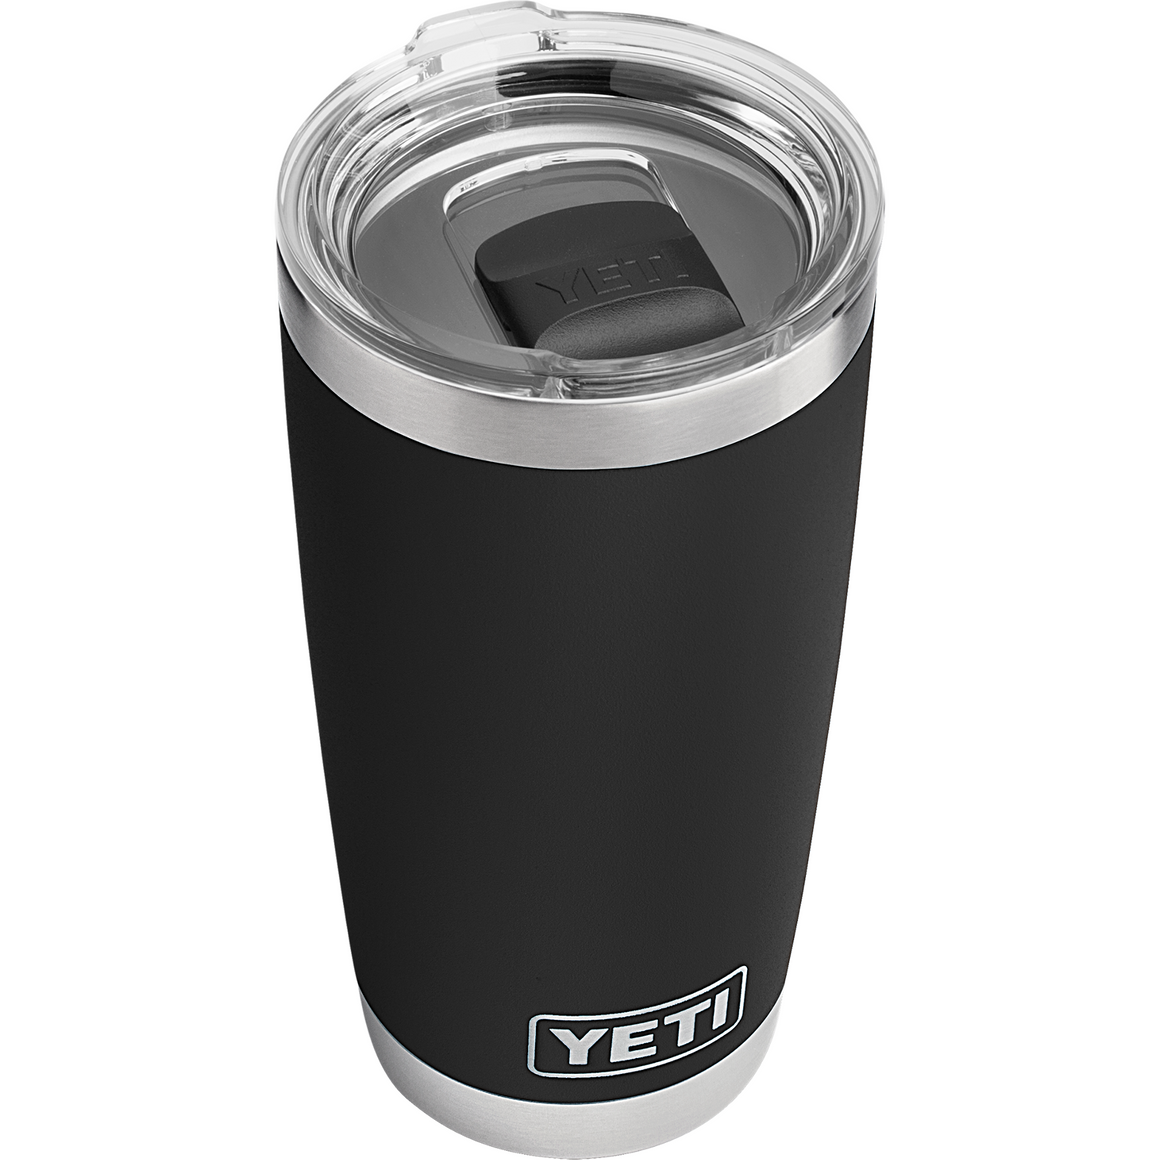 YETI® Premium Coolers, Drinkware & Gear - The Kansas City BBQ Store